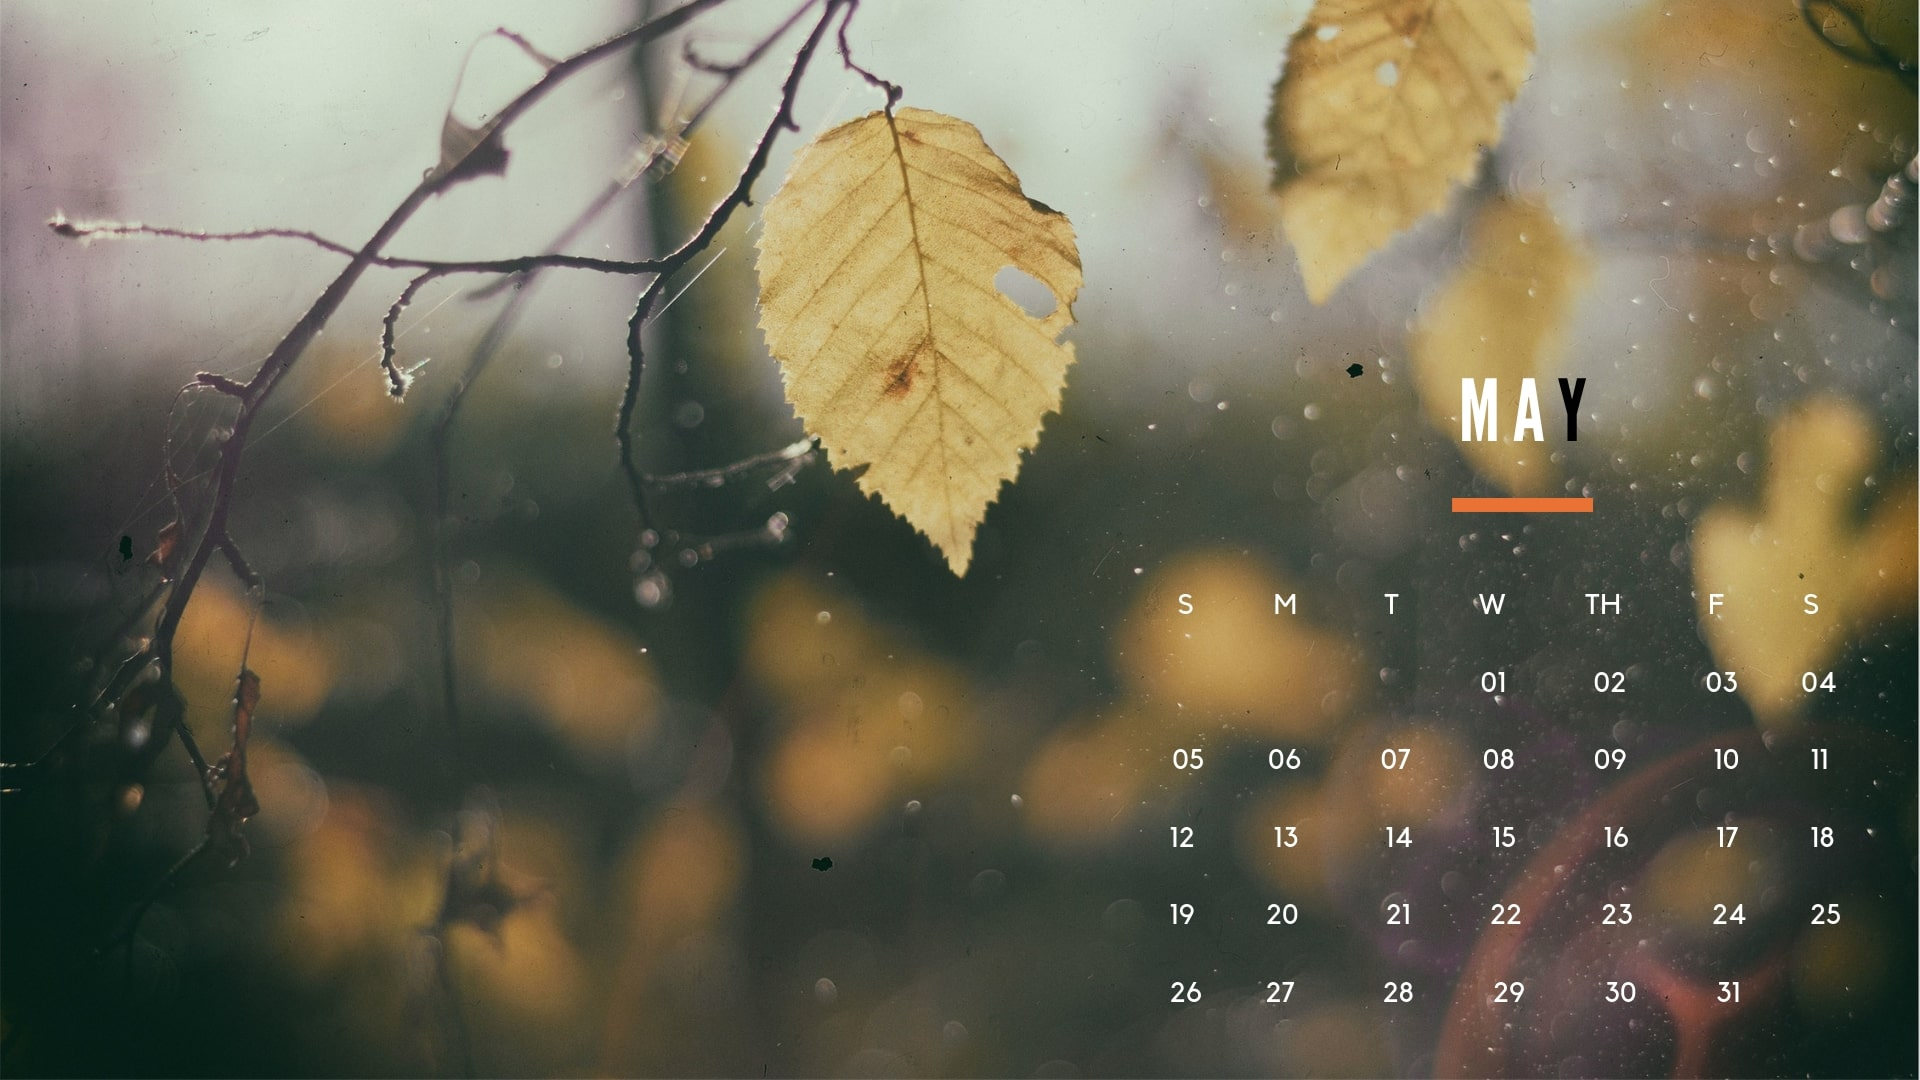 Free May Calendar Wallpaper 2019